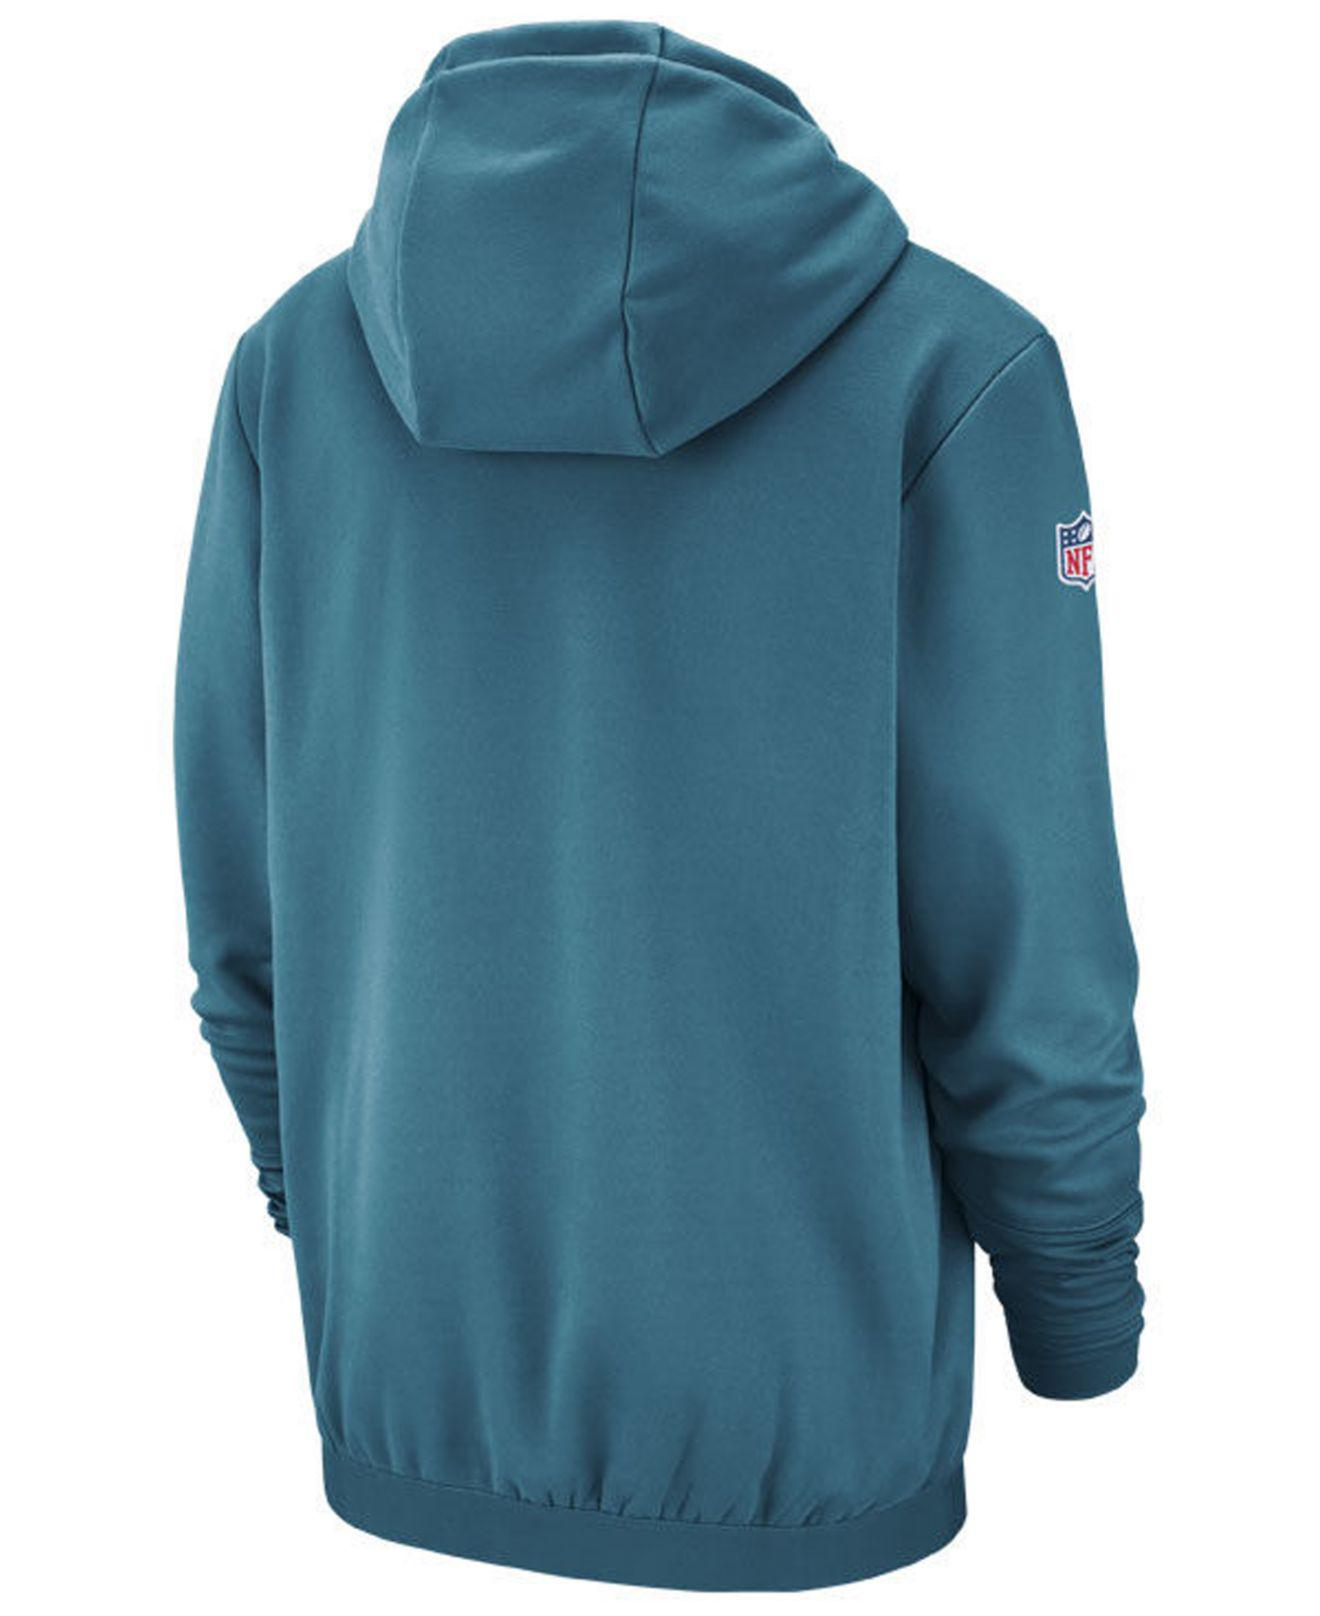 2be90bfb9 Lyst - Nike Jacksonville Jaguars Sideline Player Local Therma Hoodie in  Blue for Men